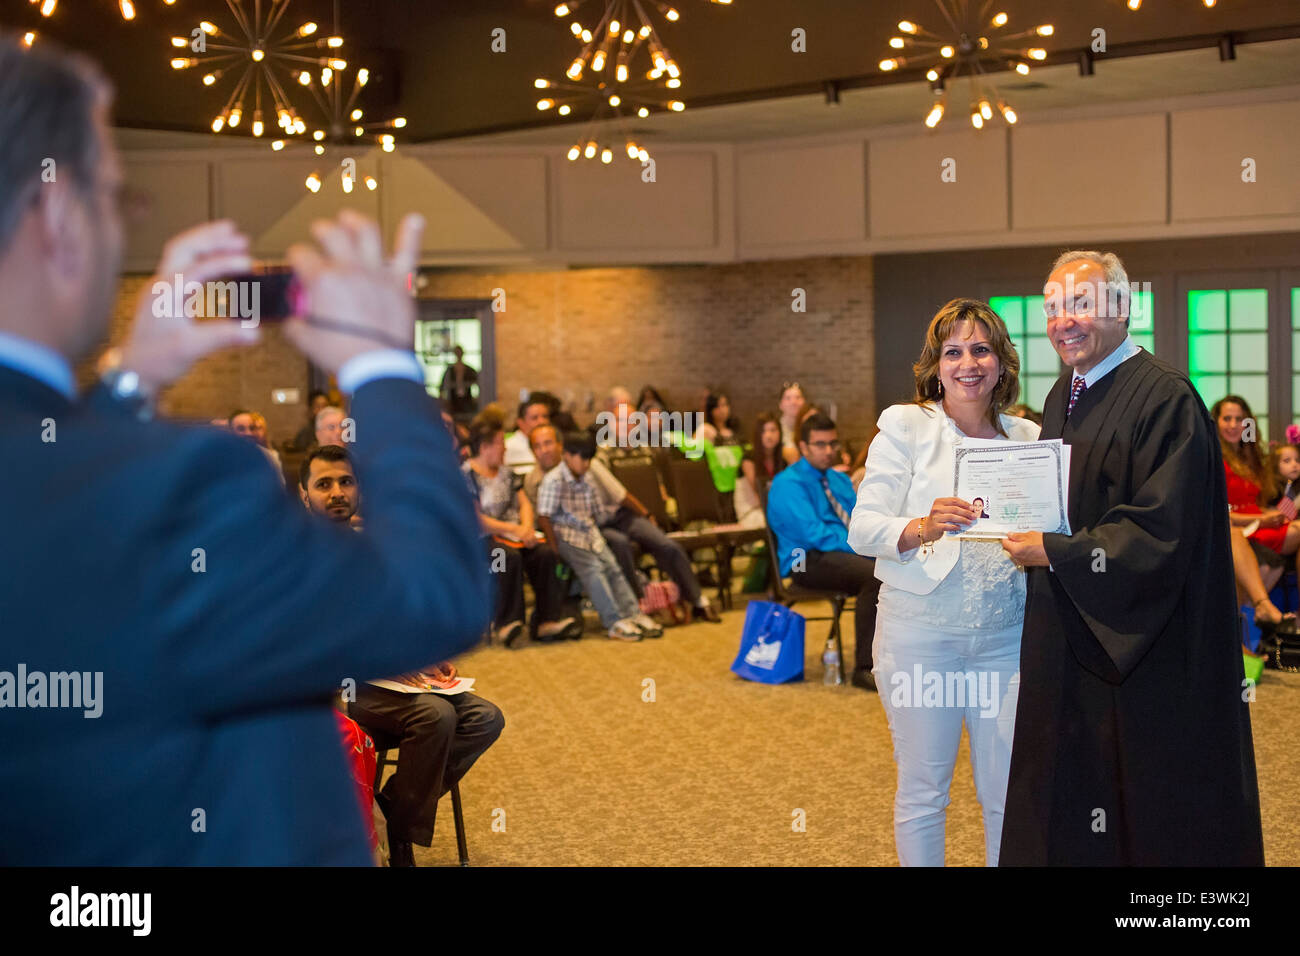 Judge George Caram Steeh, a federal judge, presents a naturalization certificate to a new U.S. citizen. - Stock Image